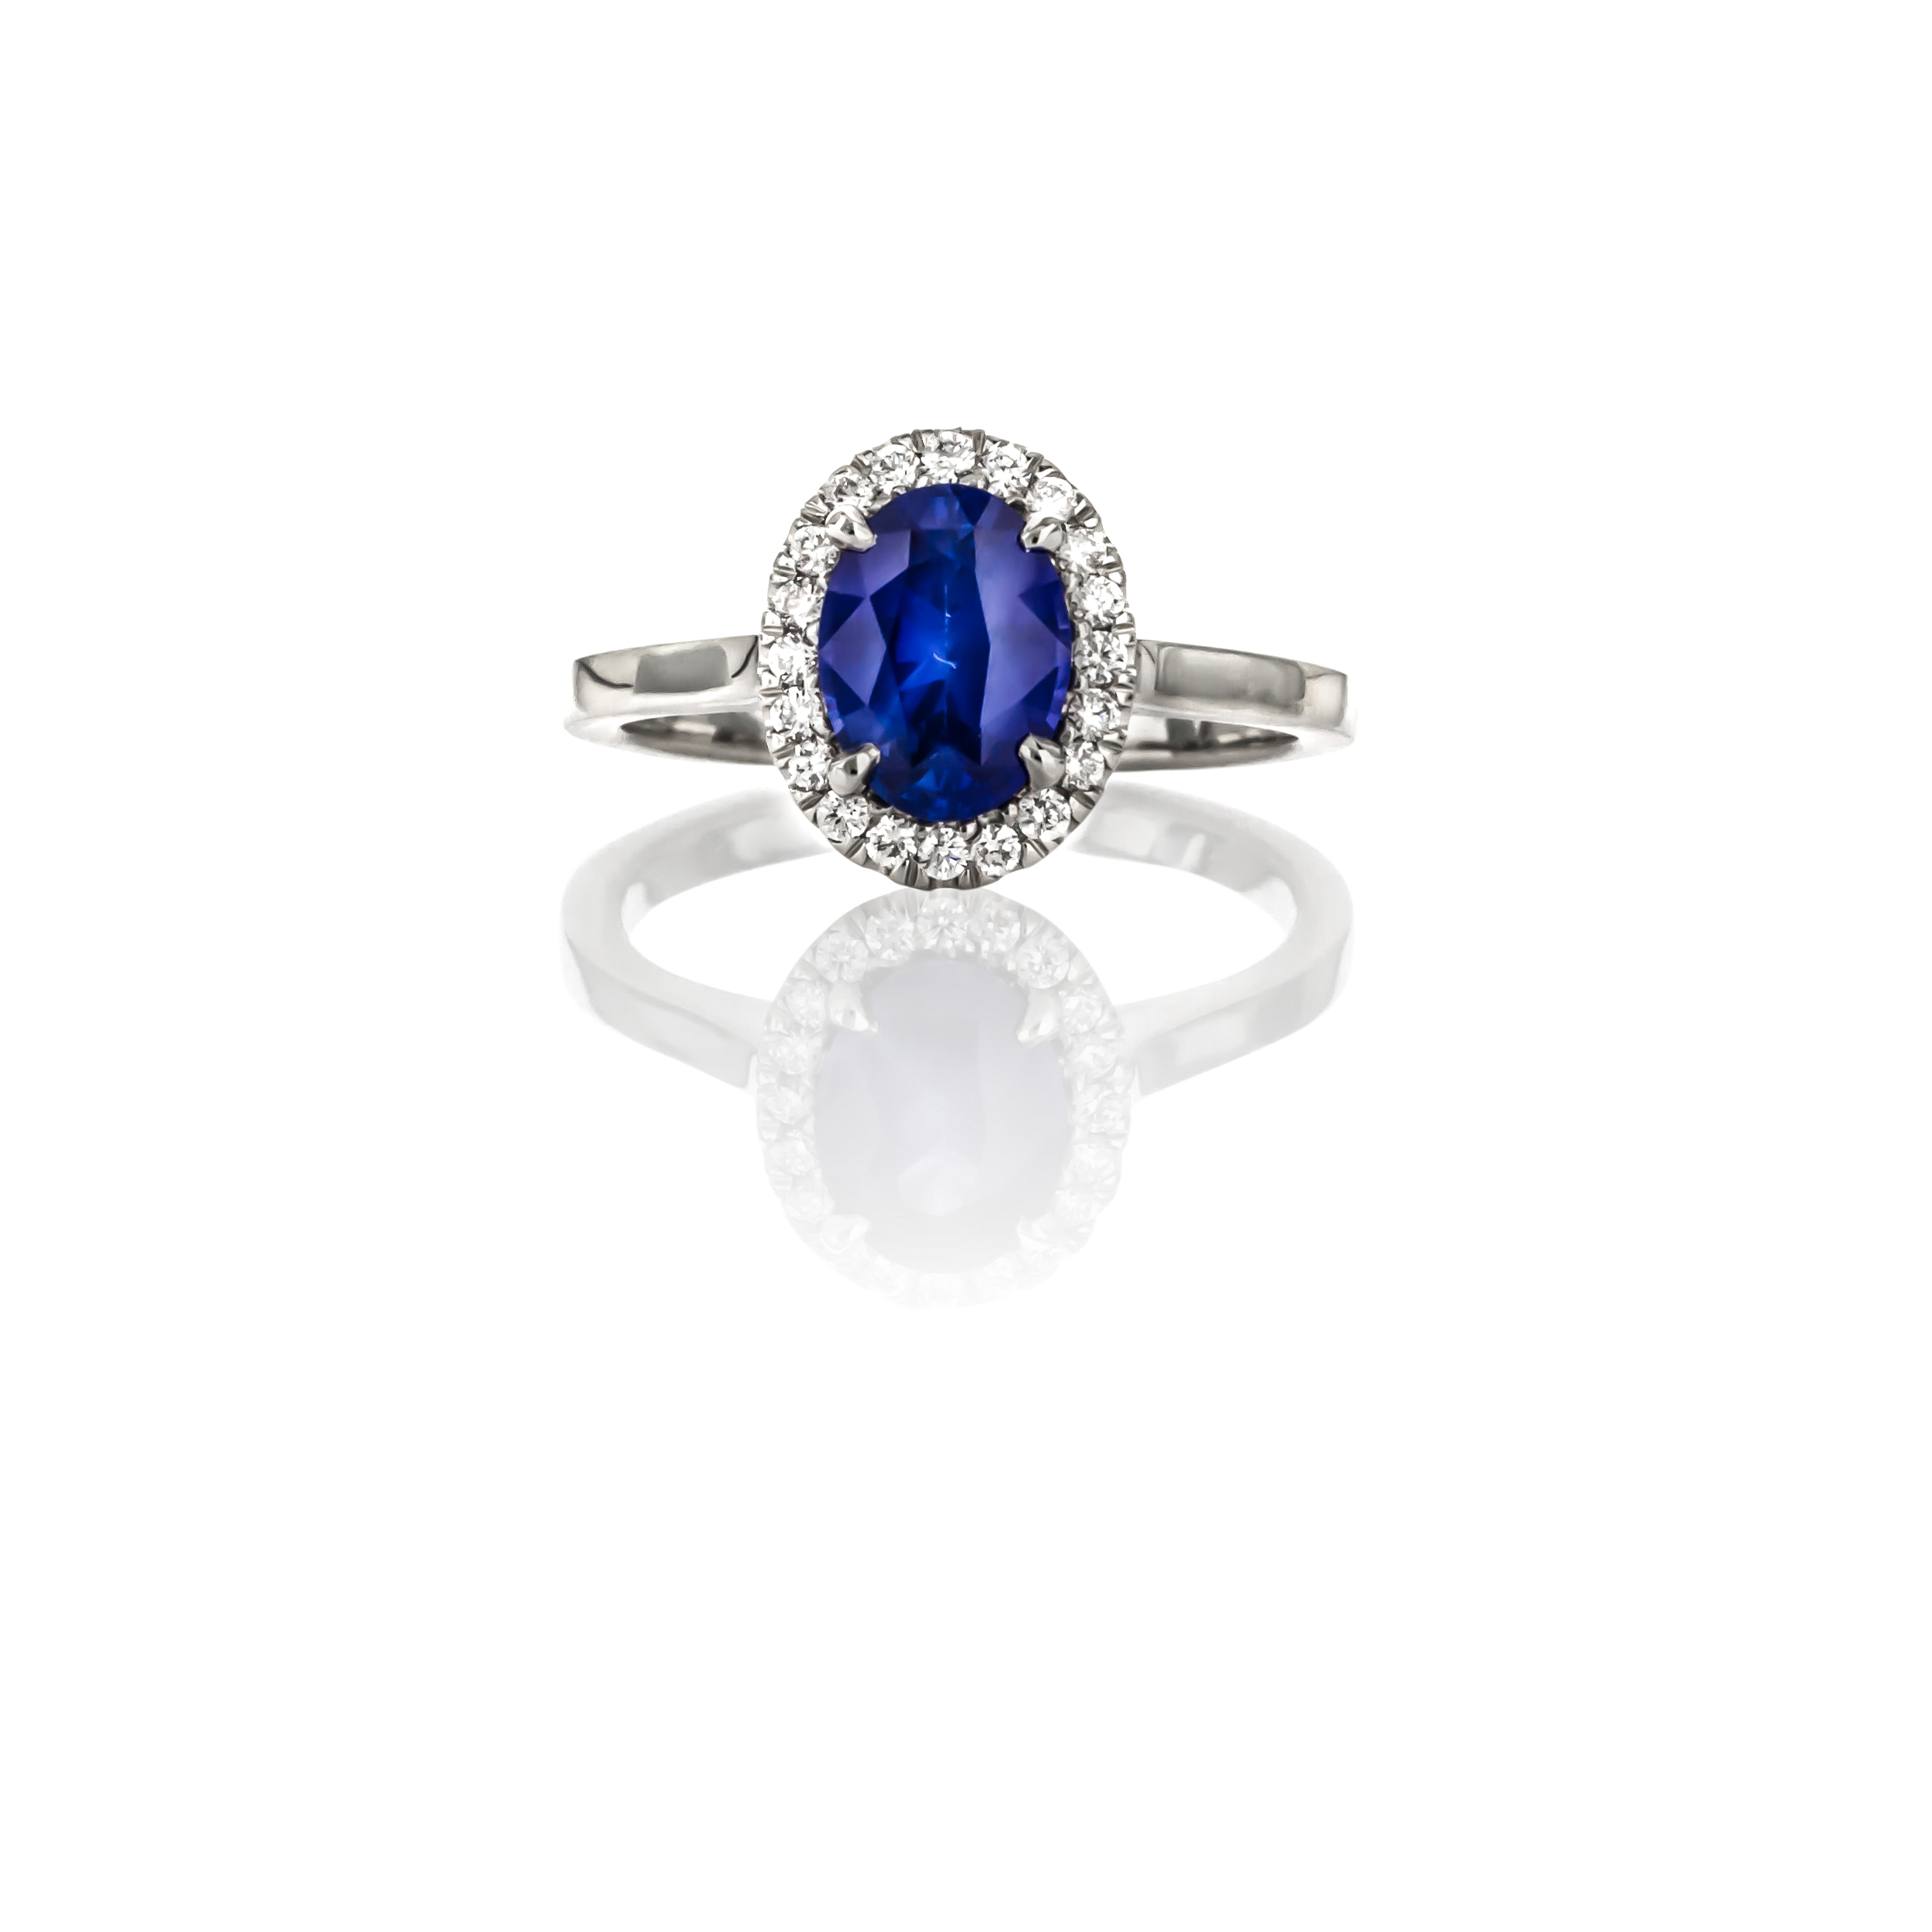 CUSTOM SAPPHIRE RING WITH DIAMOND HALO